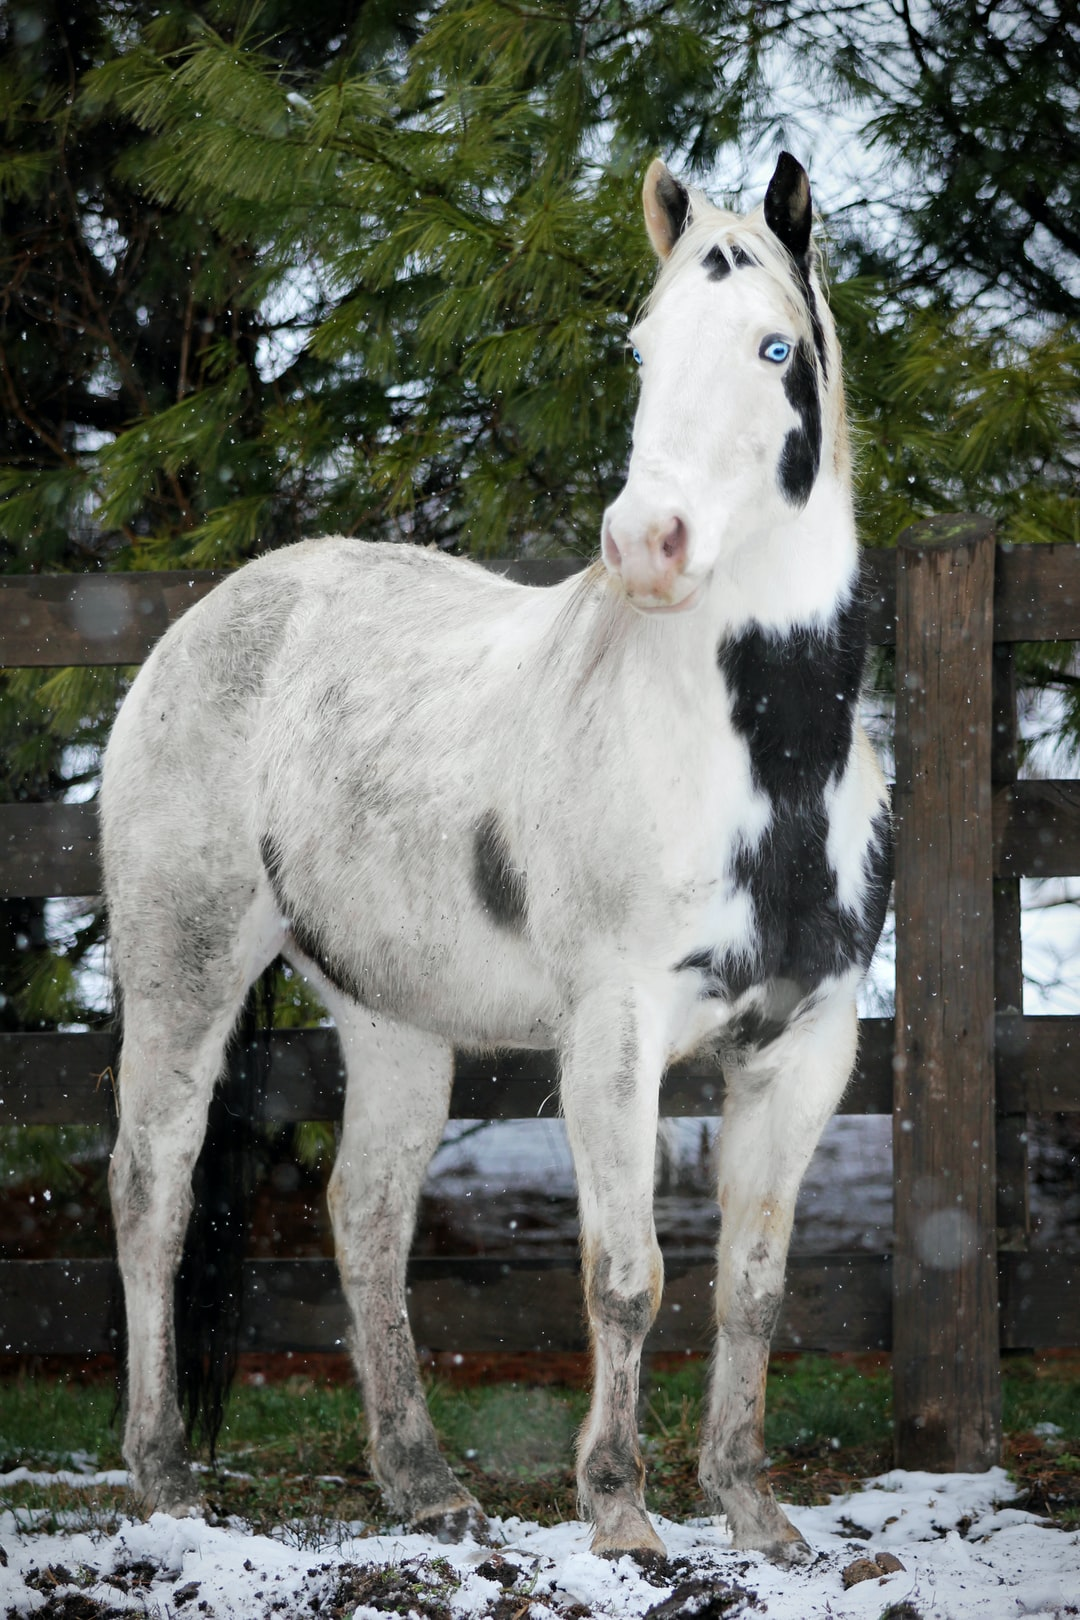 A black and white paint horse stands in the snow.